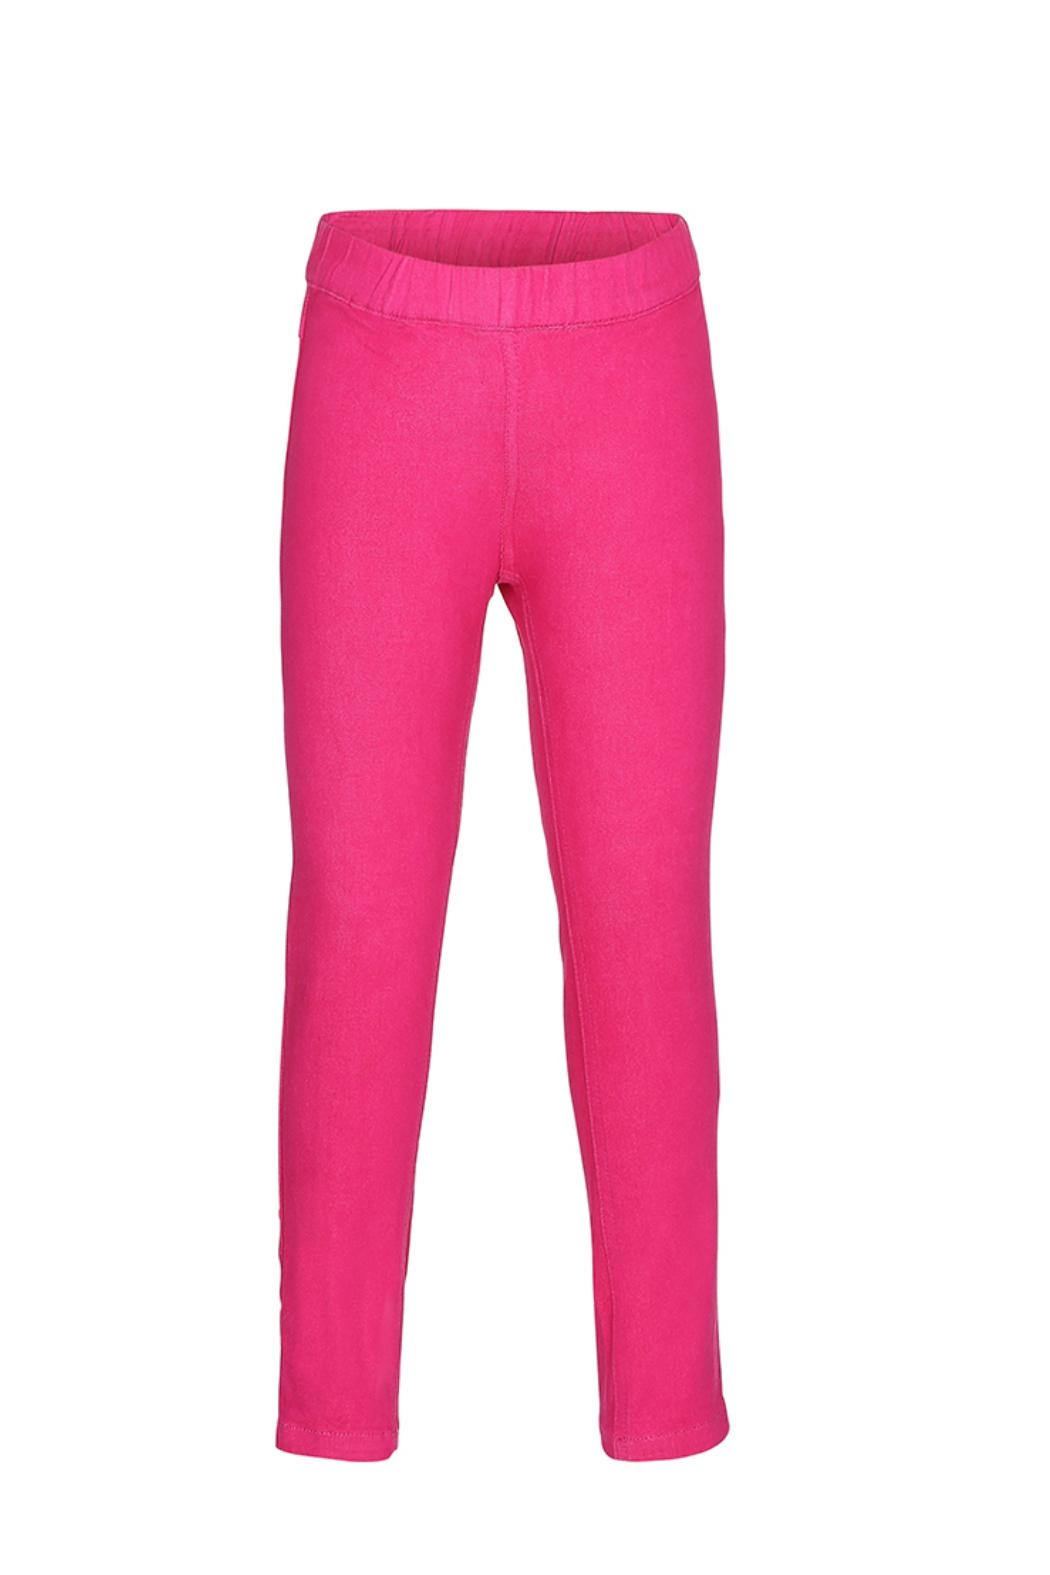 Molo April Cerise Trousers - Front Cropped Image